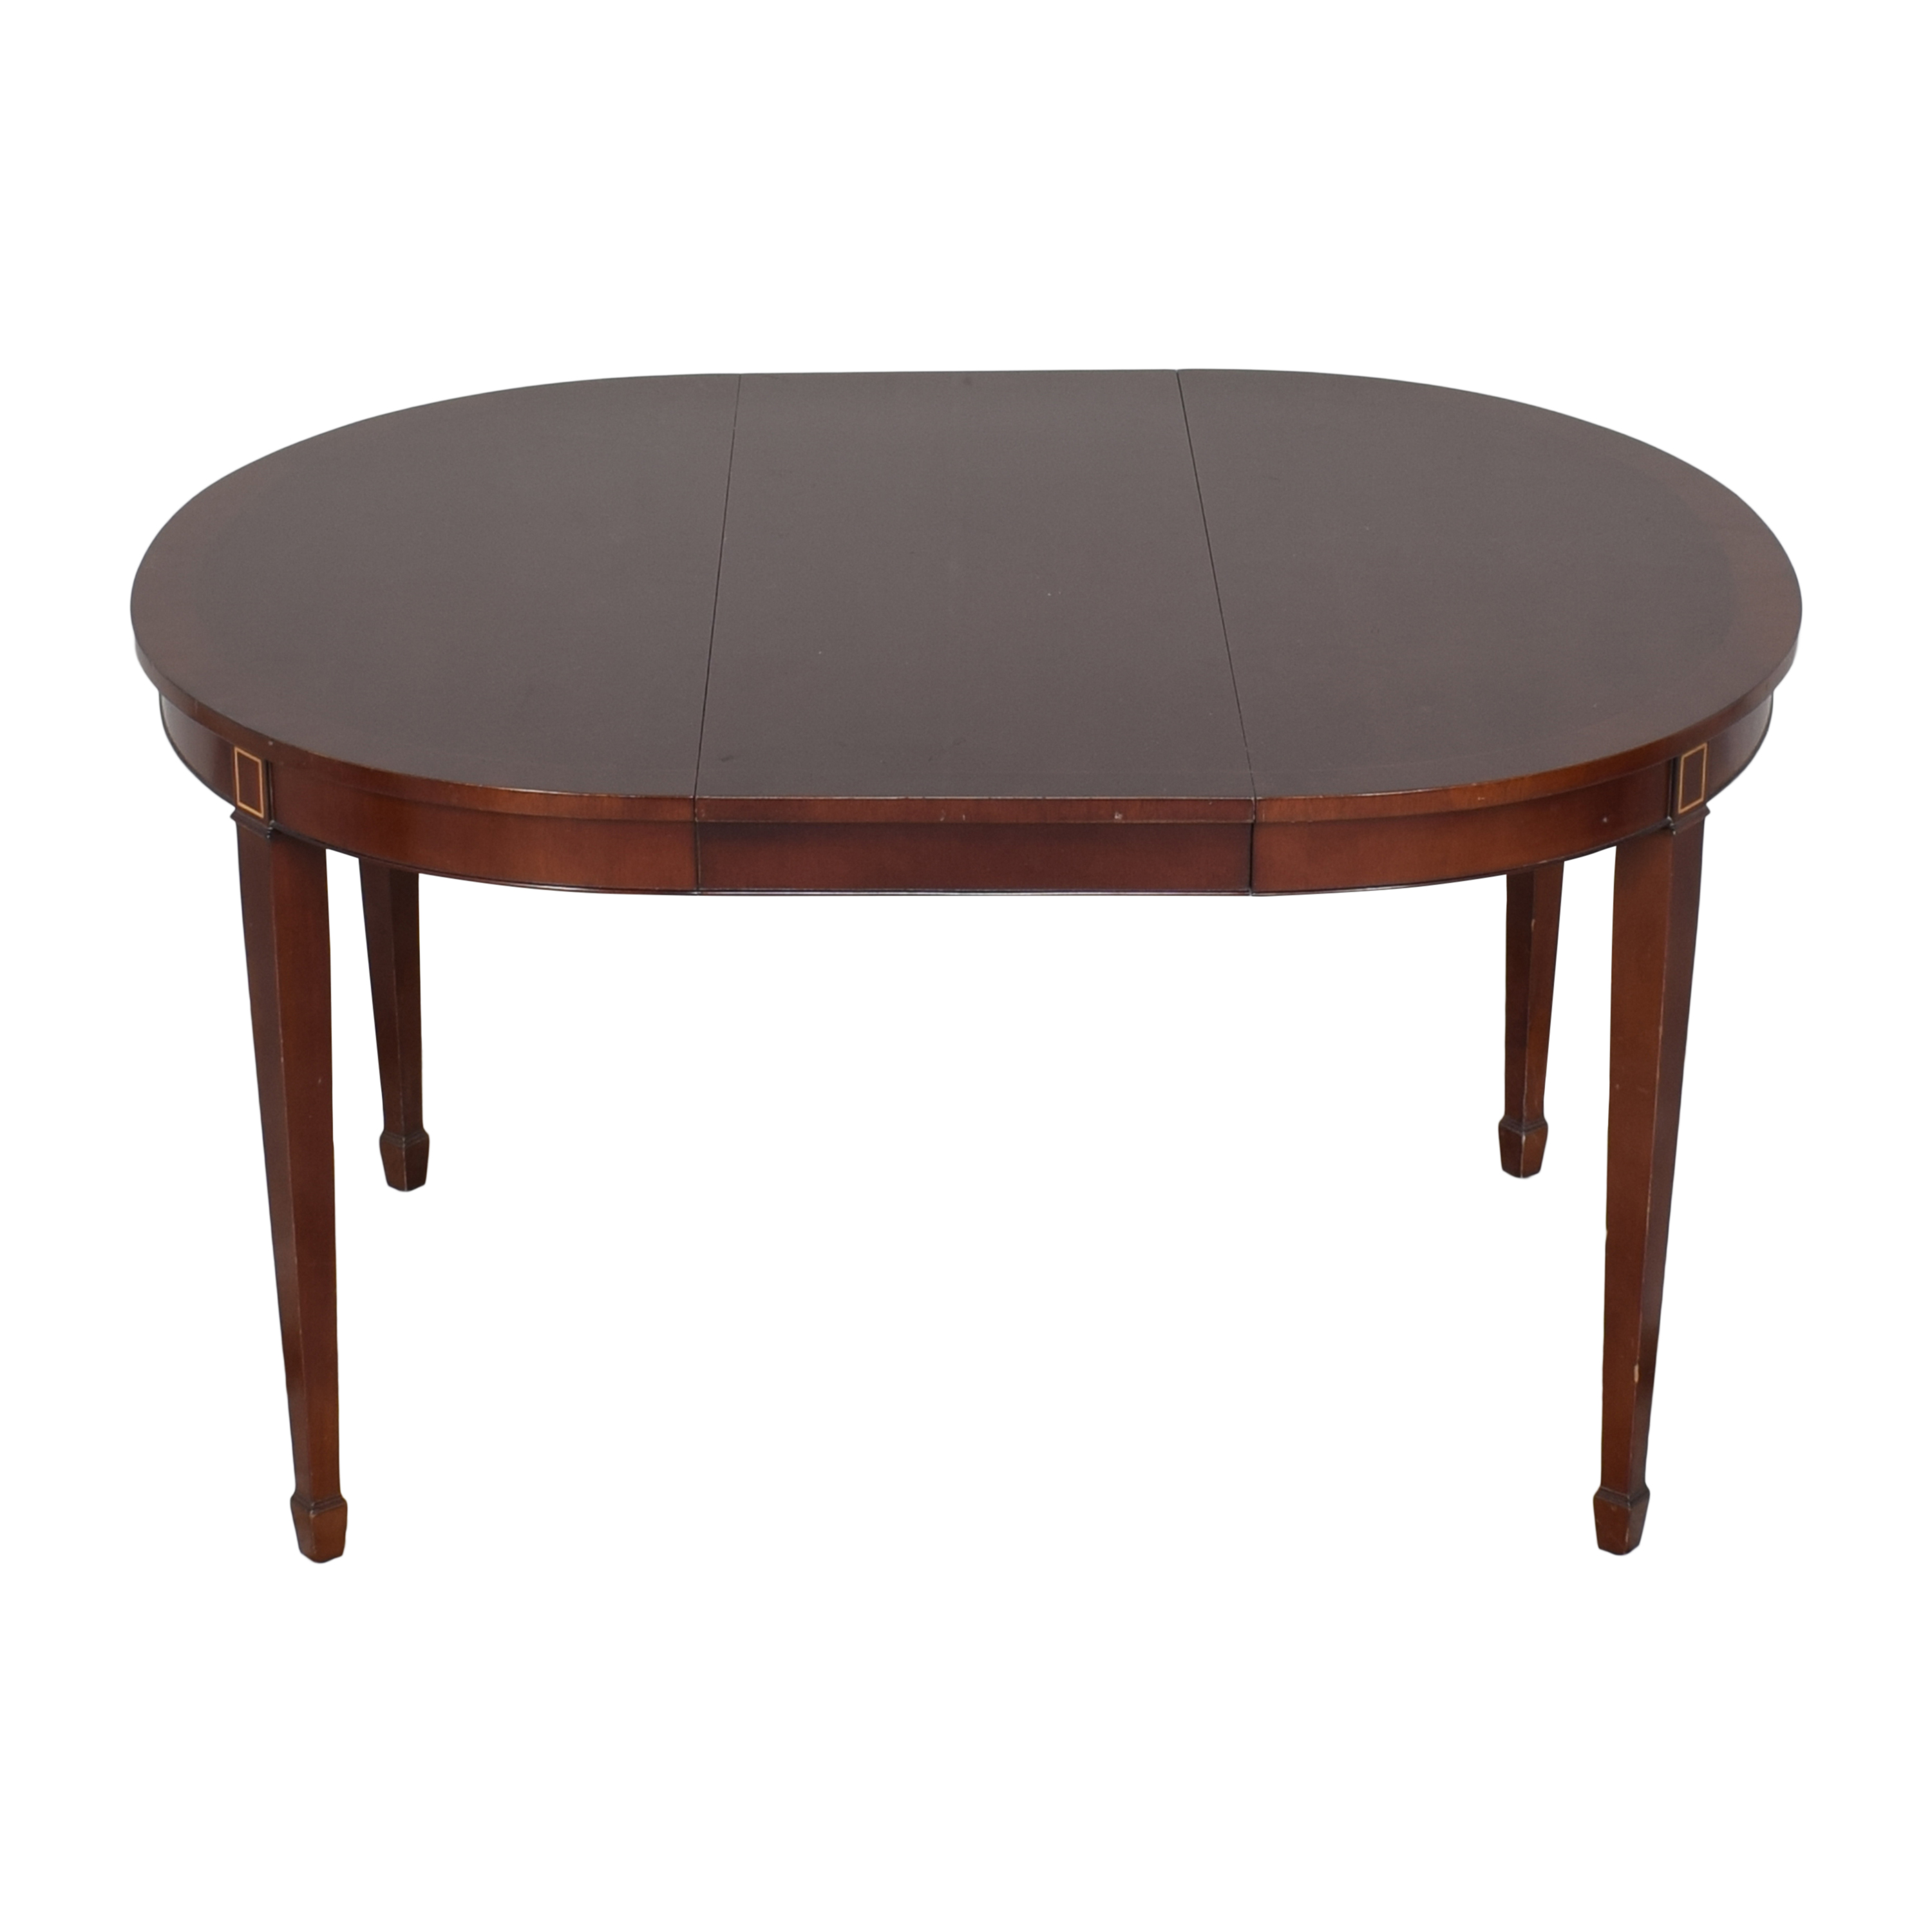 Kindel Kindel Round Extendable Dining Table nyc